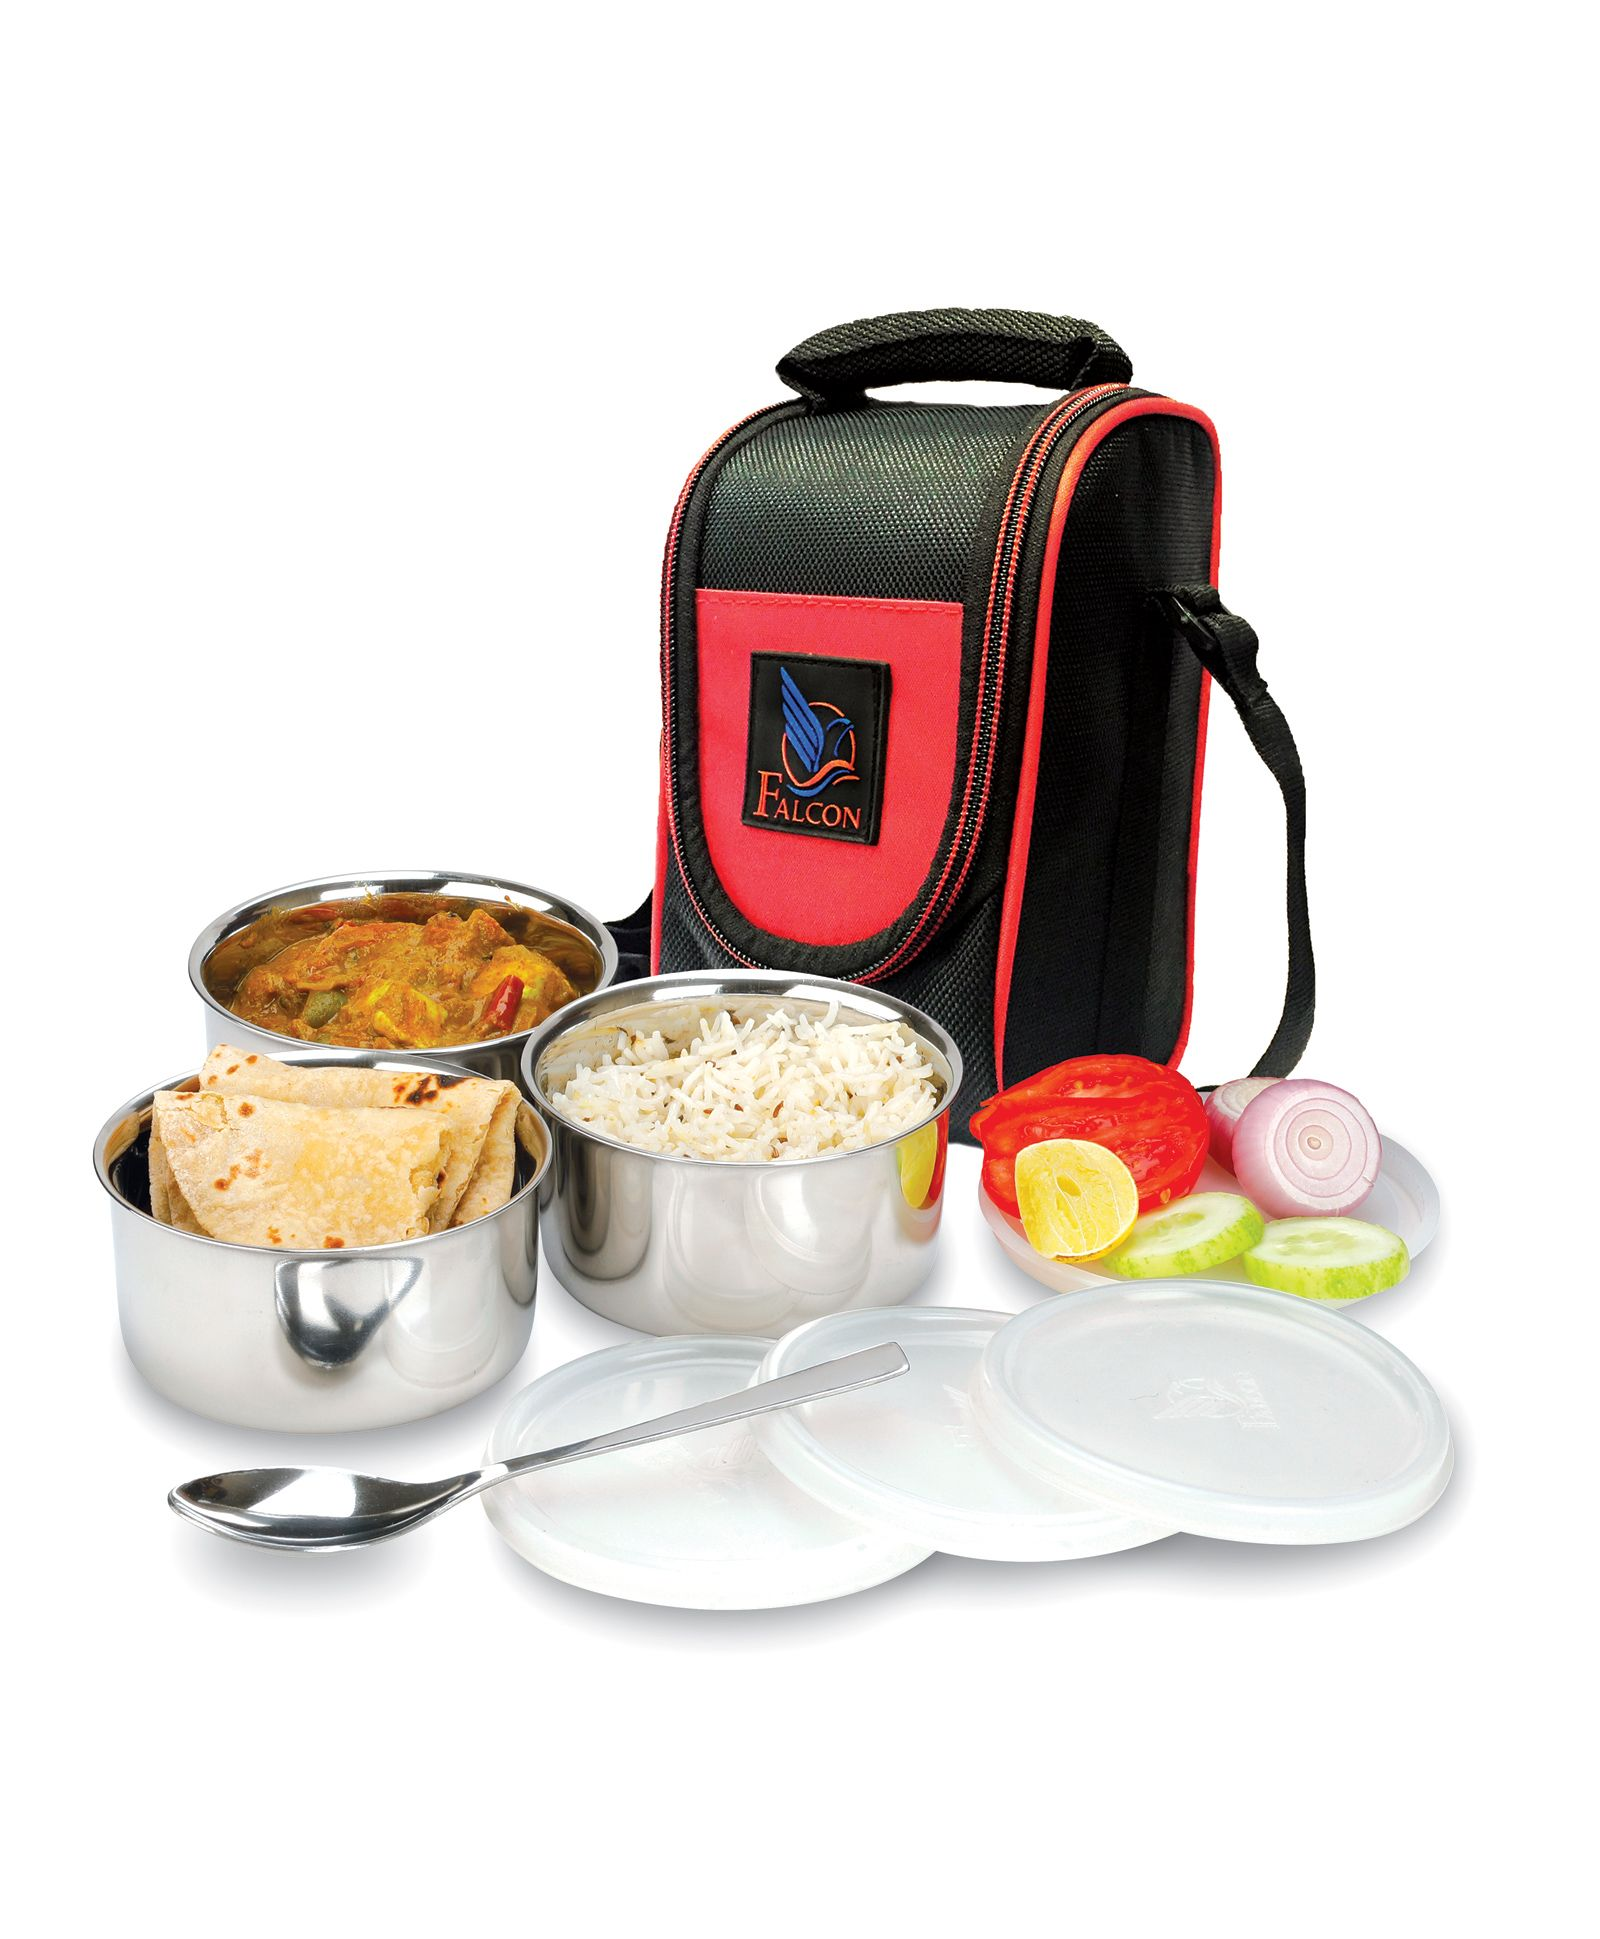 Falcon Tuff Double Wall Tiffin 3 Piece Container With One Spoon & Insulated  Bag Black Online in India, Buy at Best Price from Firstcry com - 2326843